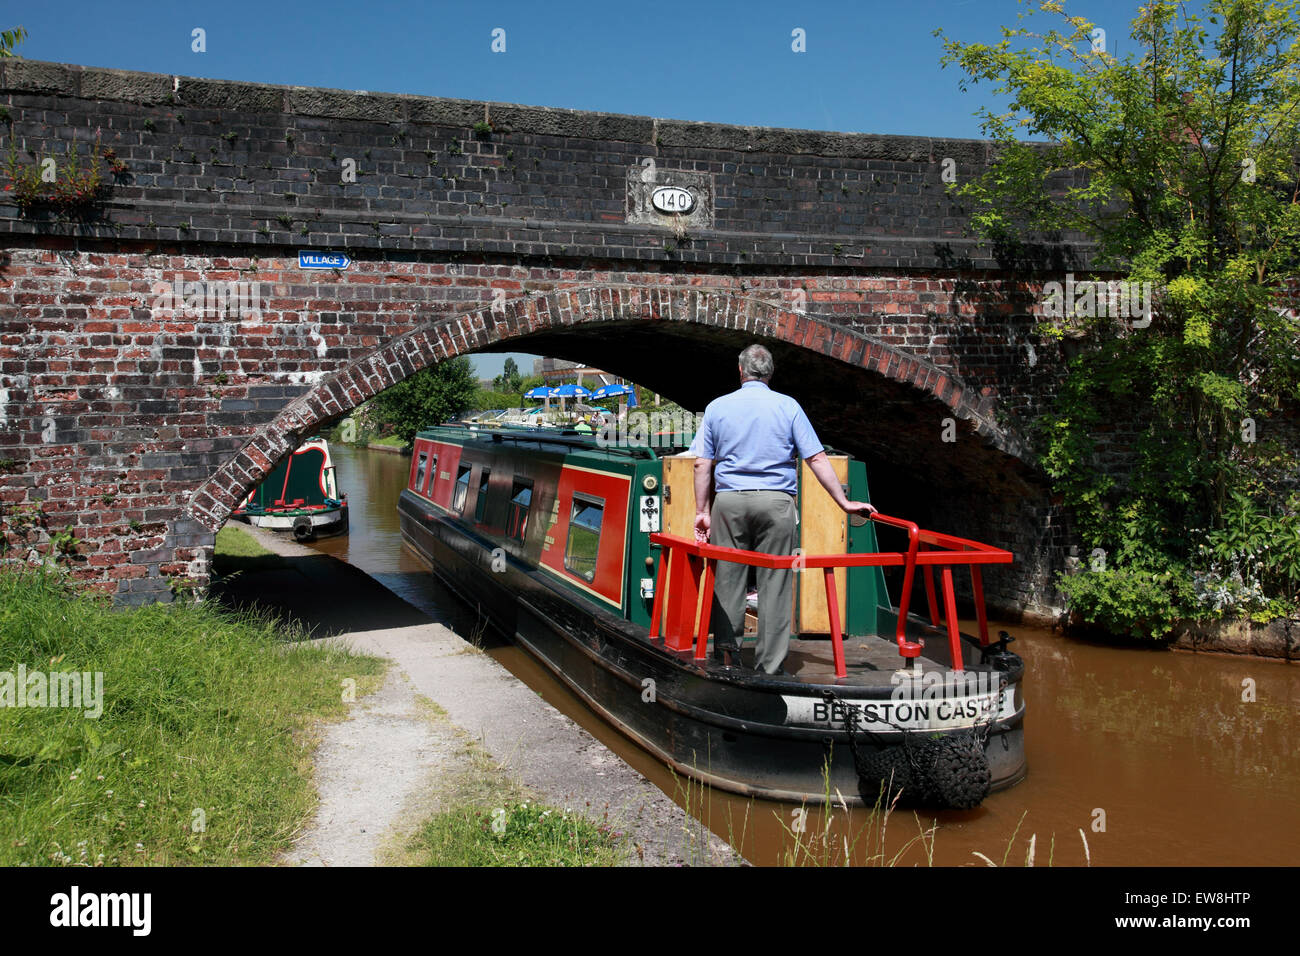 Broughton canal